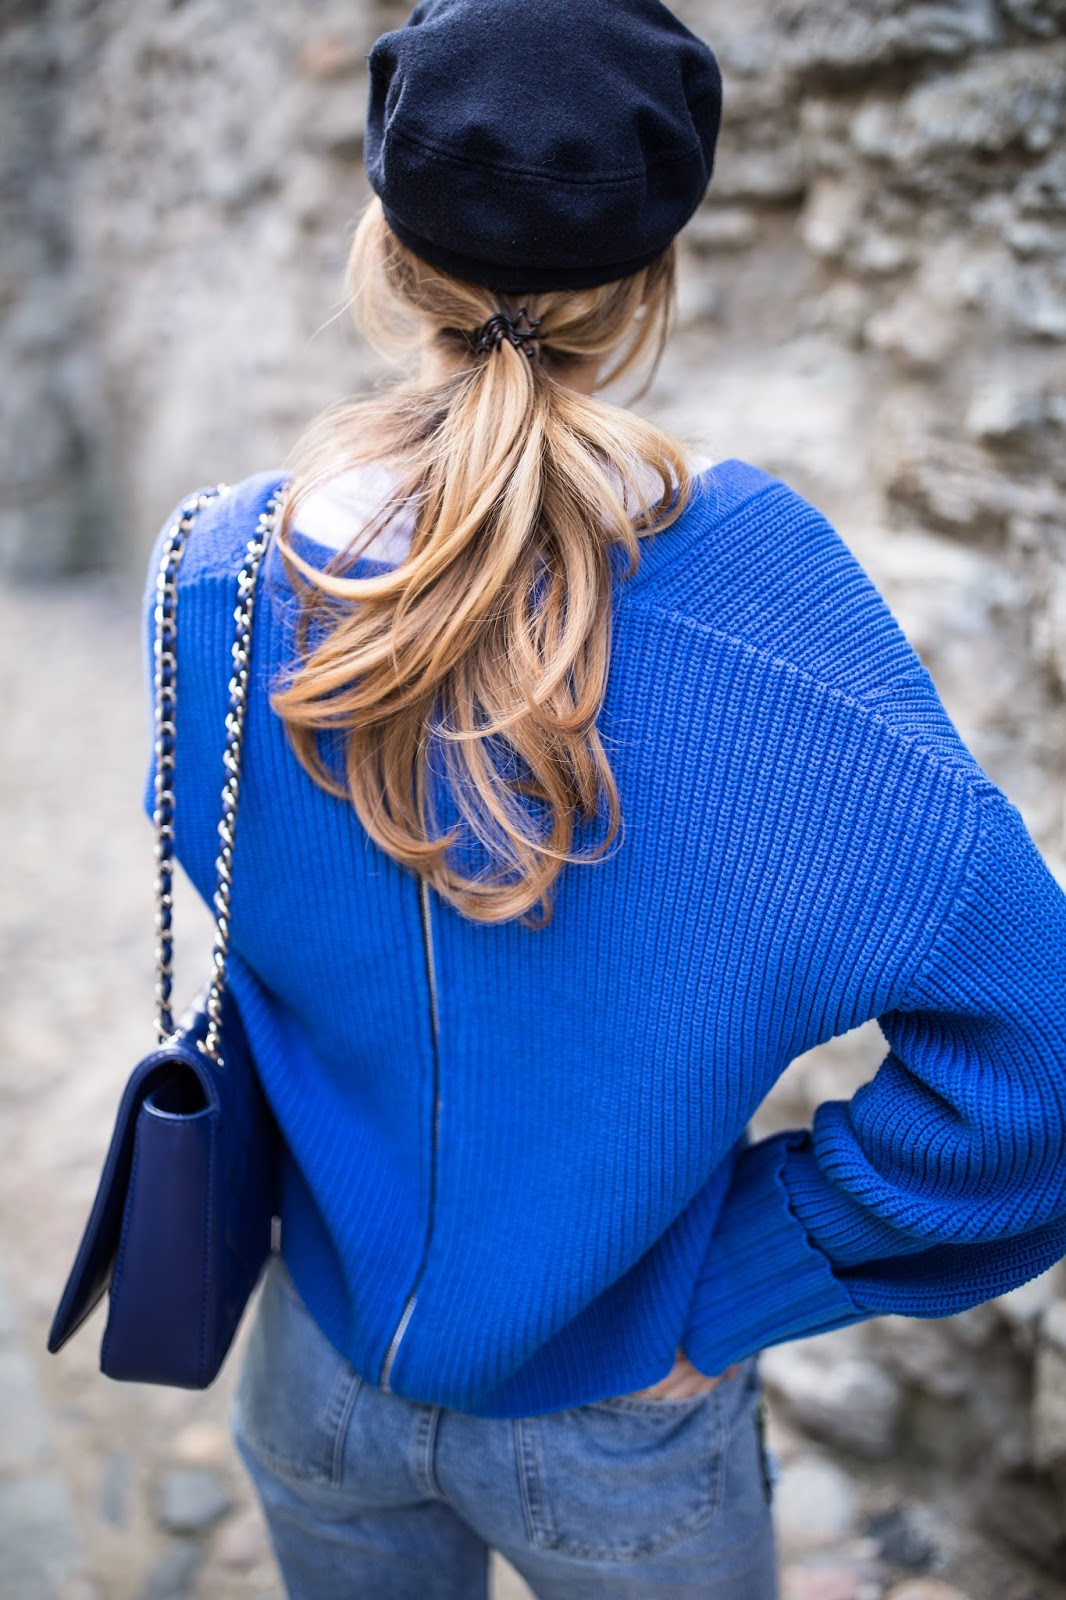 newsboy cap blue zipper detail sweater